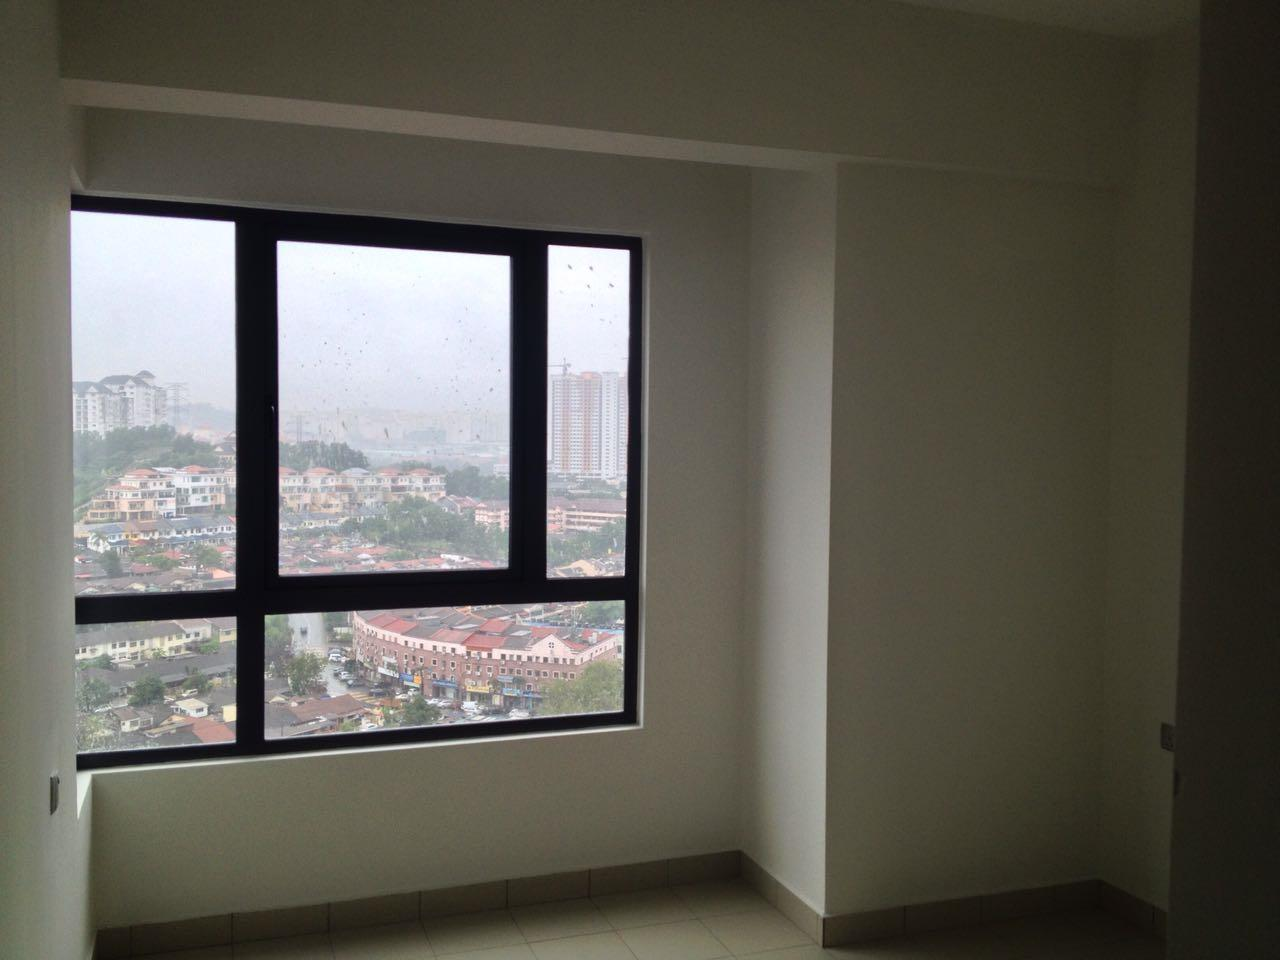 Residence 8 condo for rent studio end 12 19 2017 1 30 pm for 76 salon mid valley